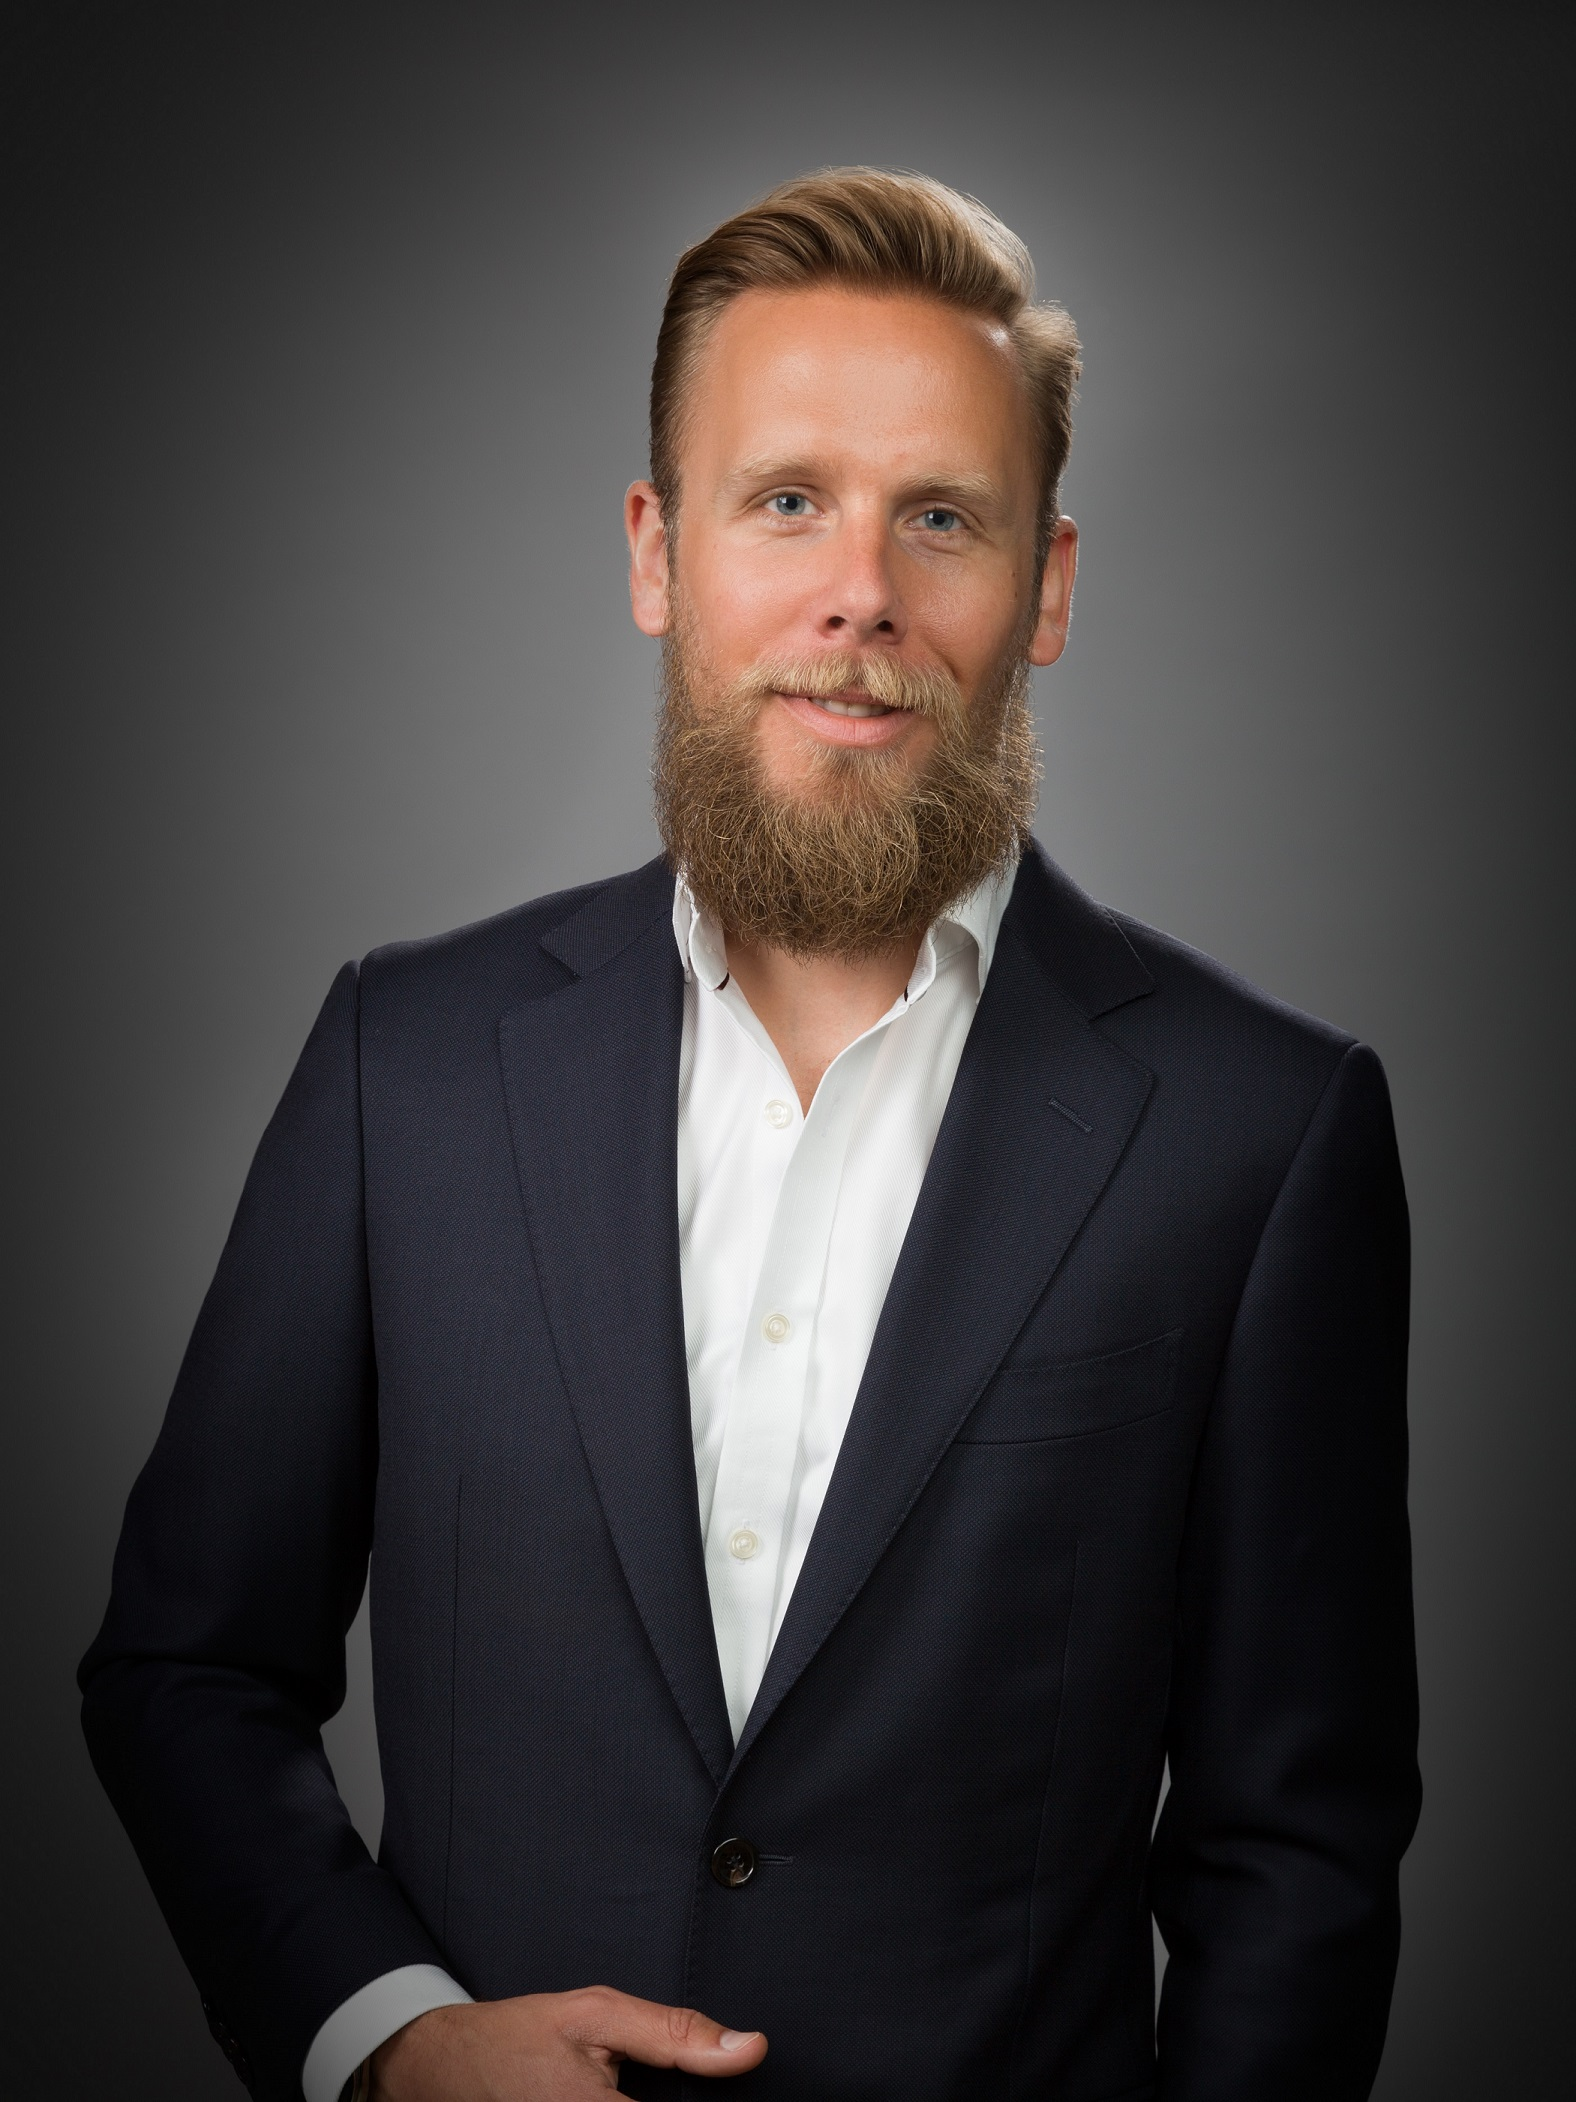 Thomas Mielke, AETHOS Consulting Group, Managing Director